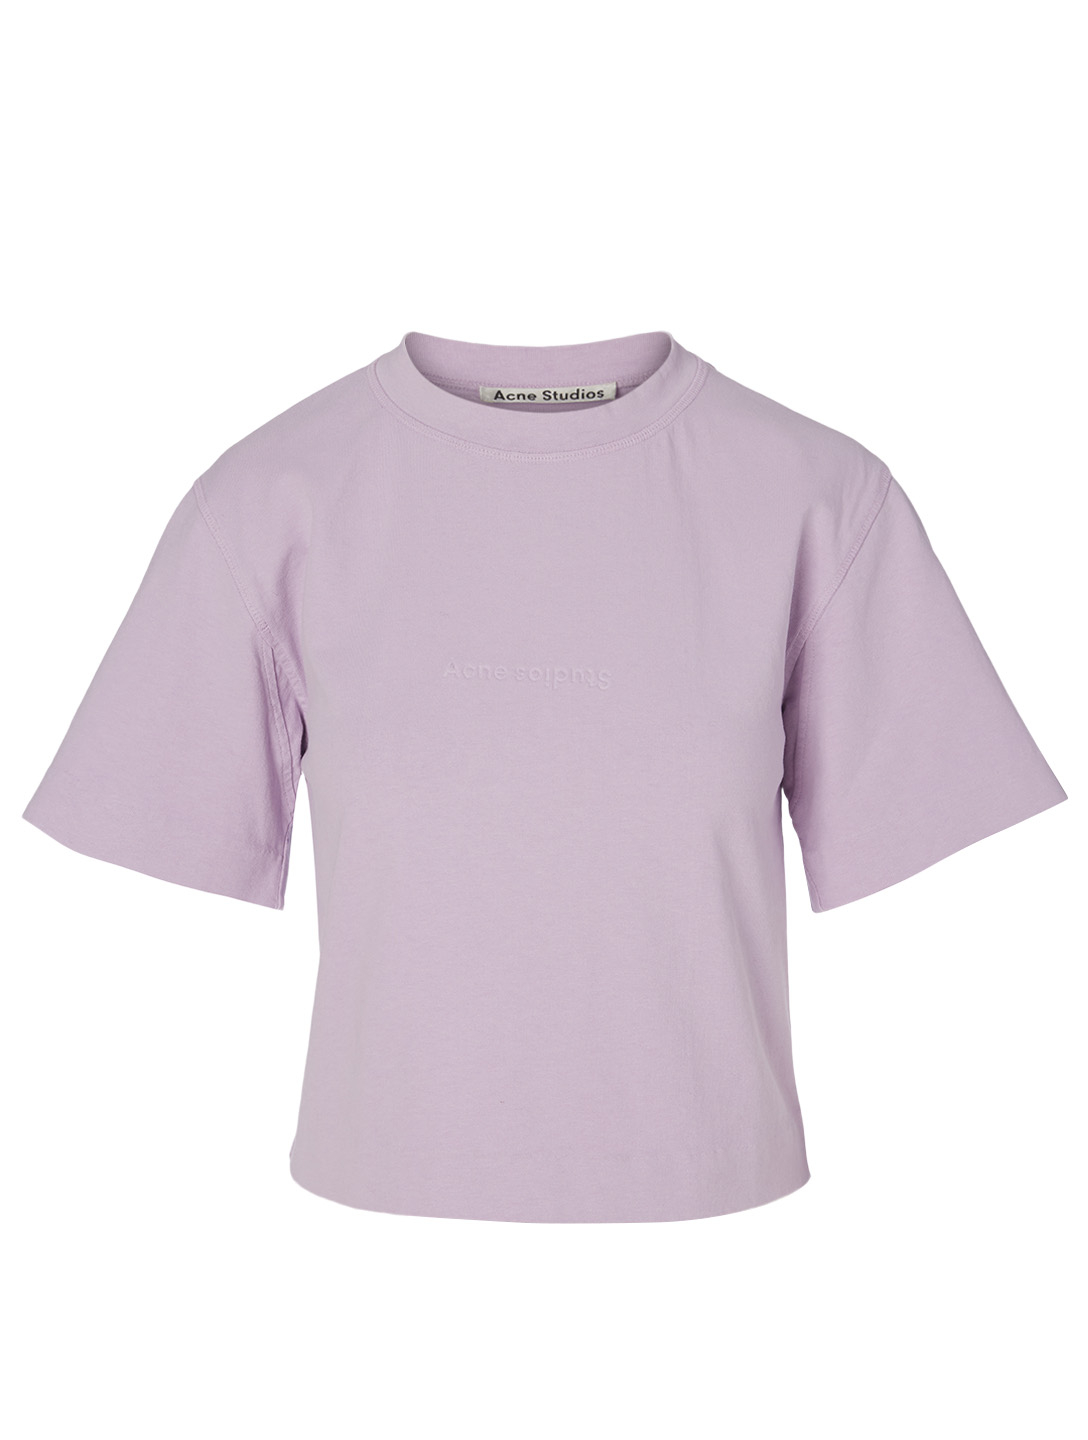 ACNE STUDIOS Cotton Logo Crop T-Shirt Women's Purple